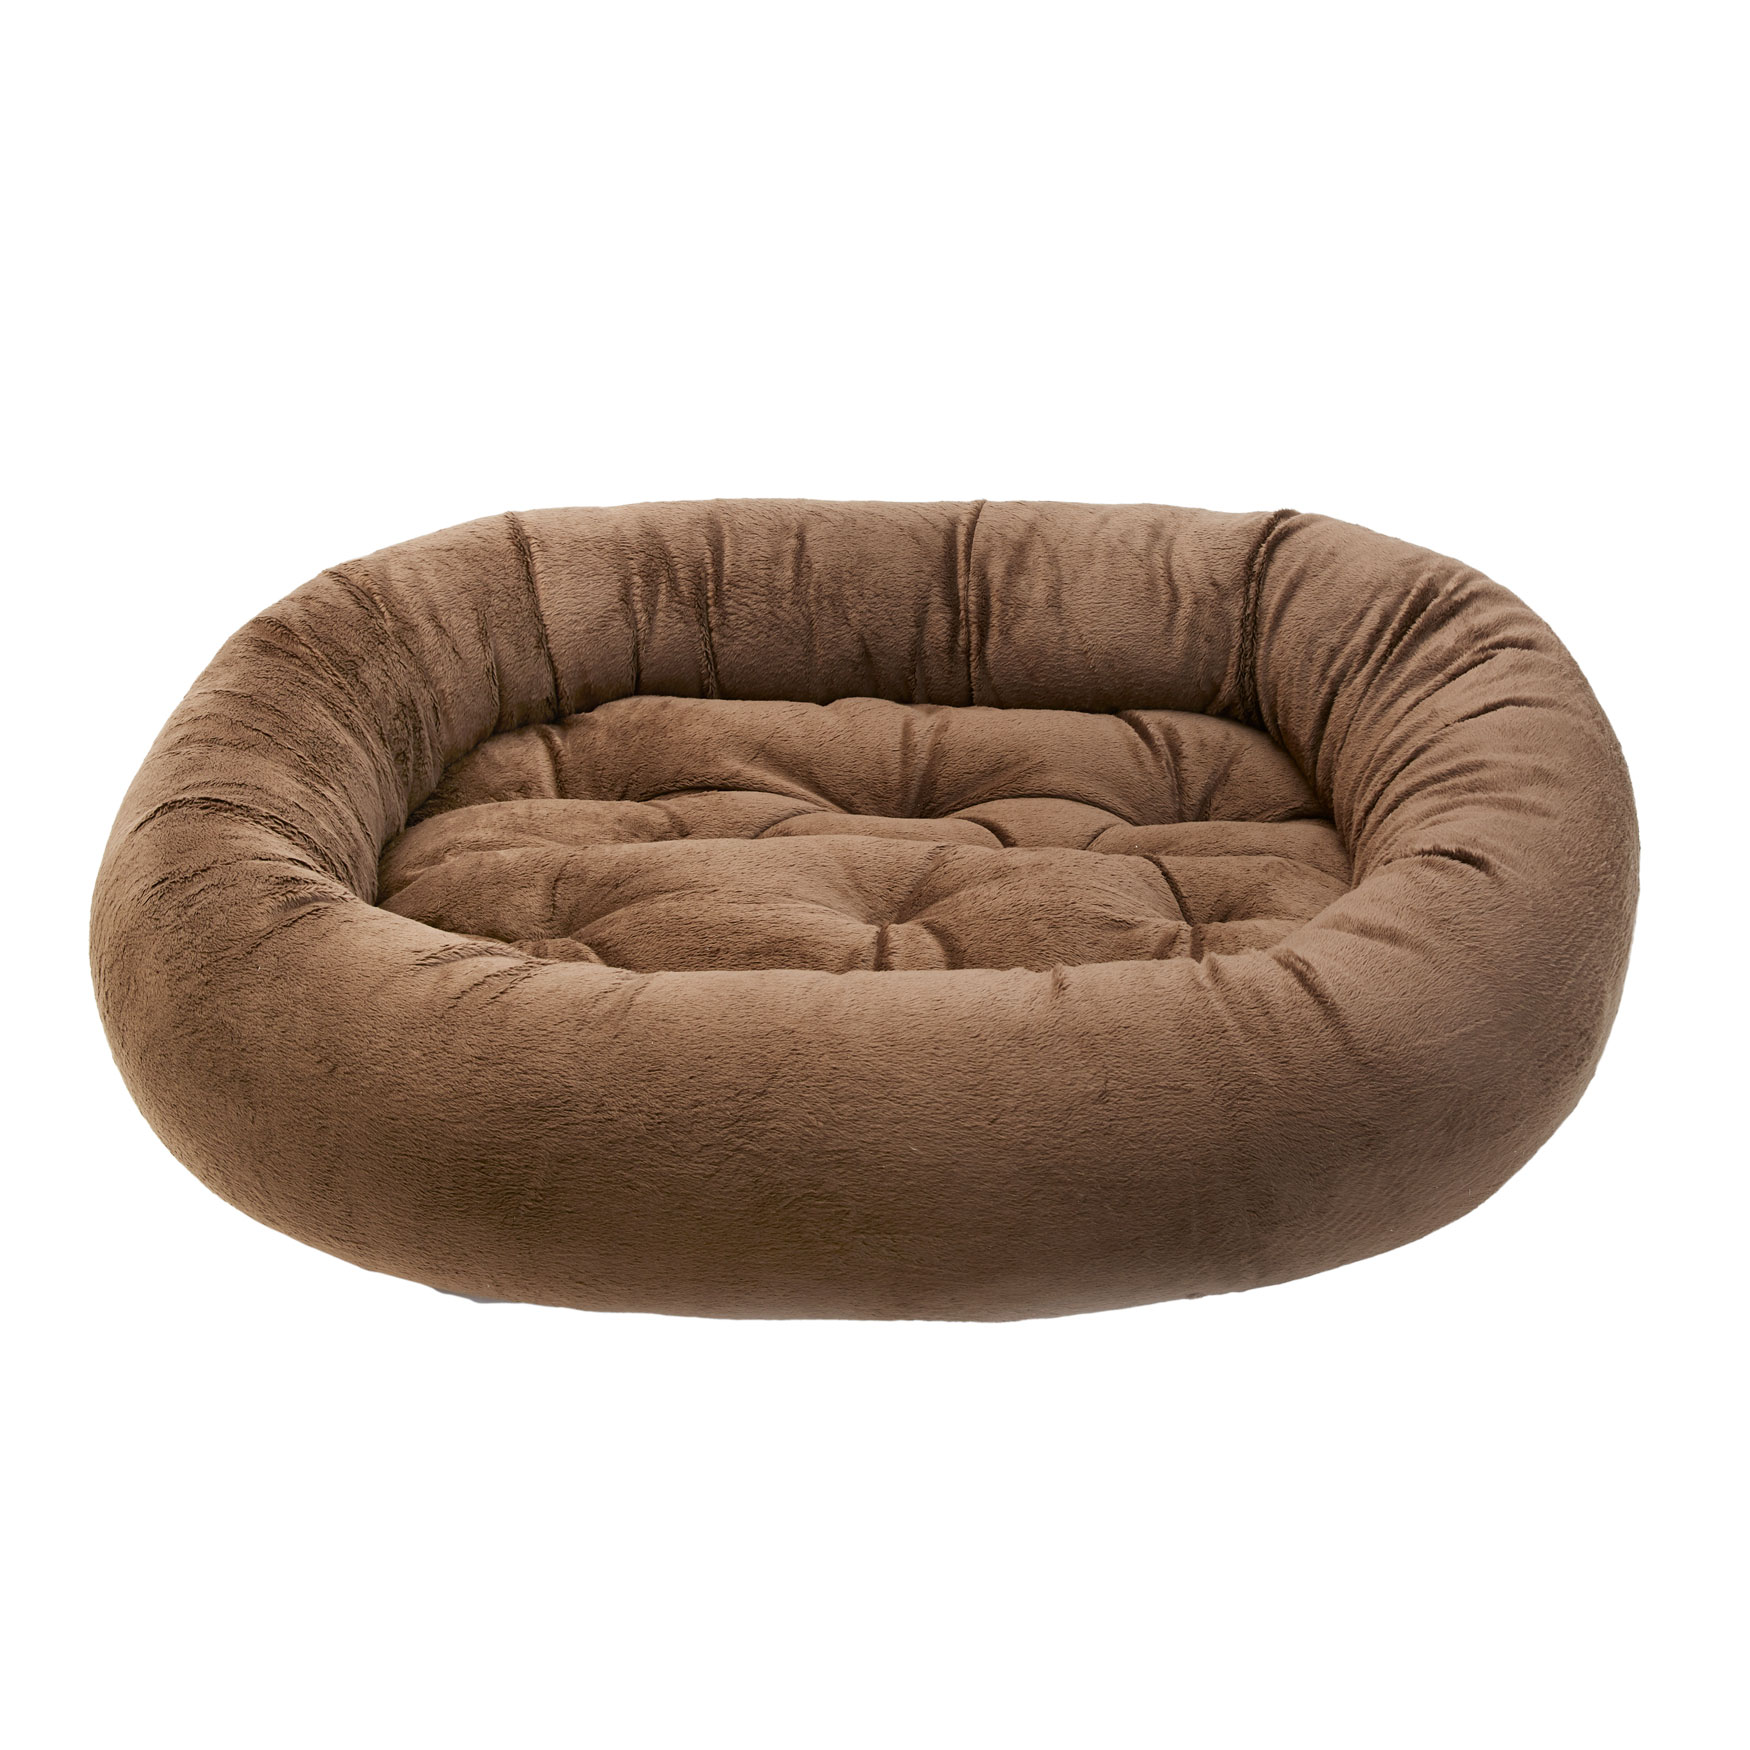 Fiona Faux-Fur Pet Bed,